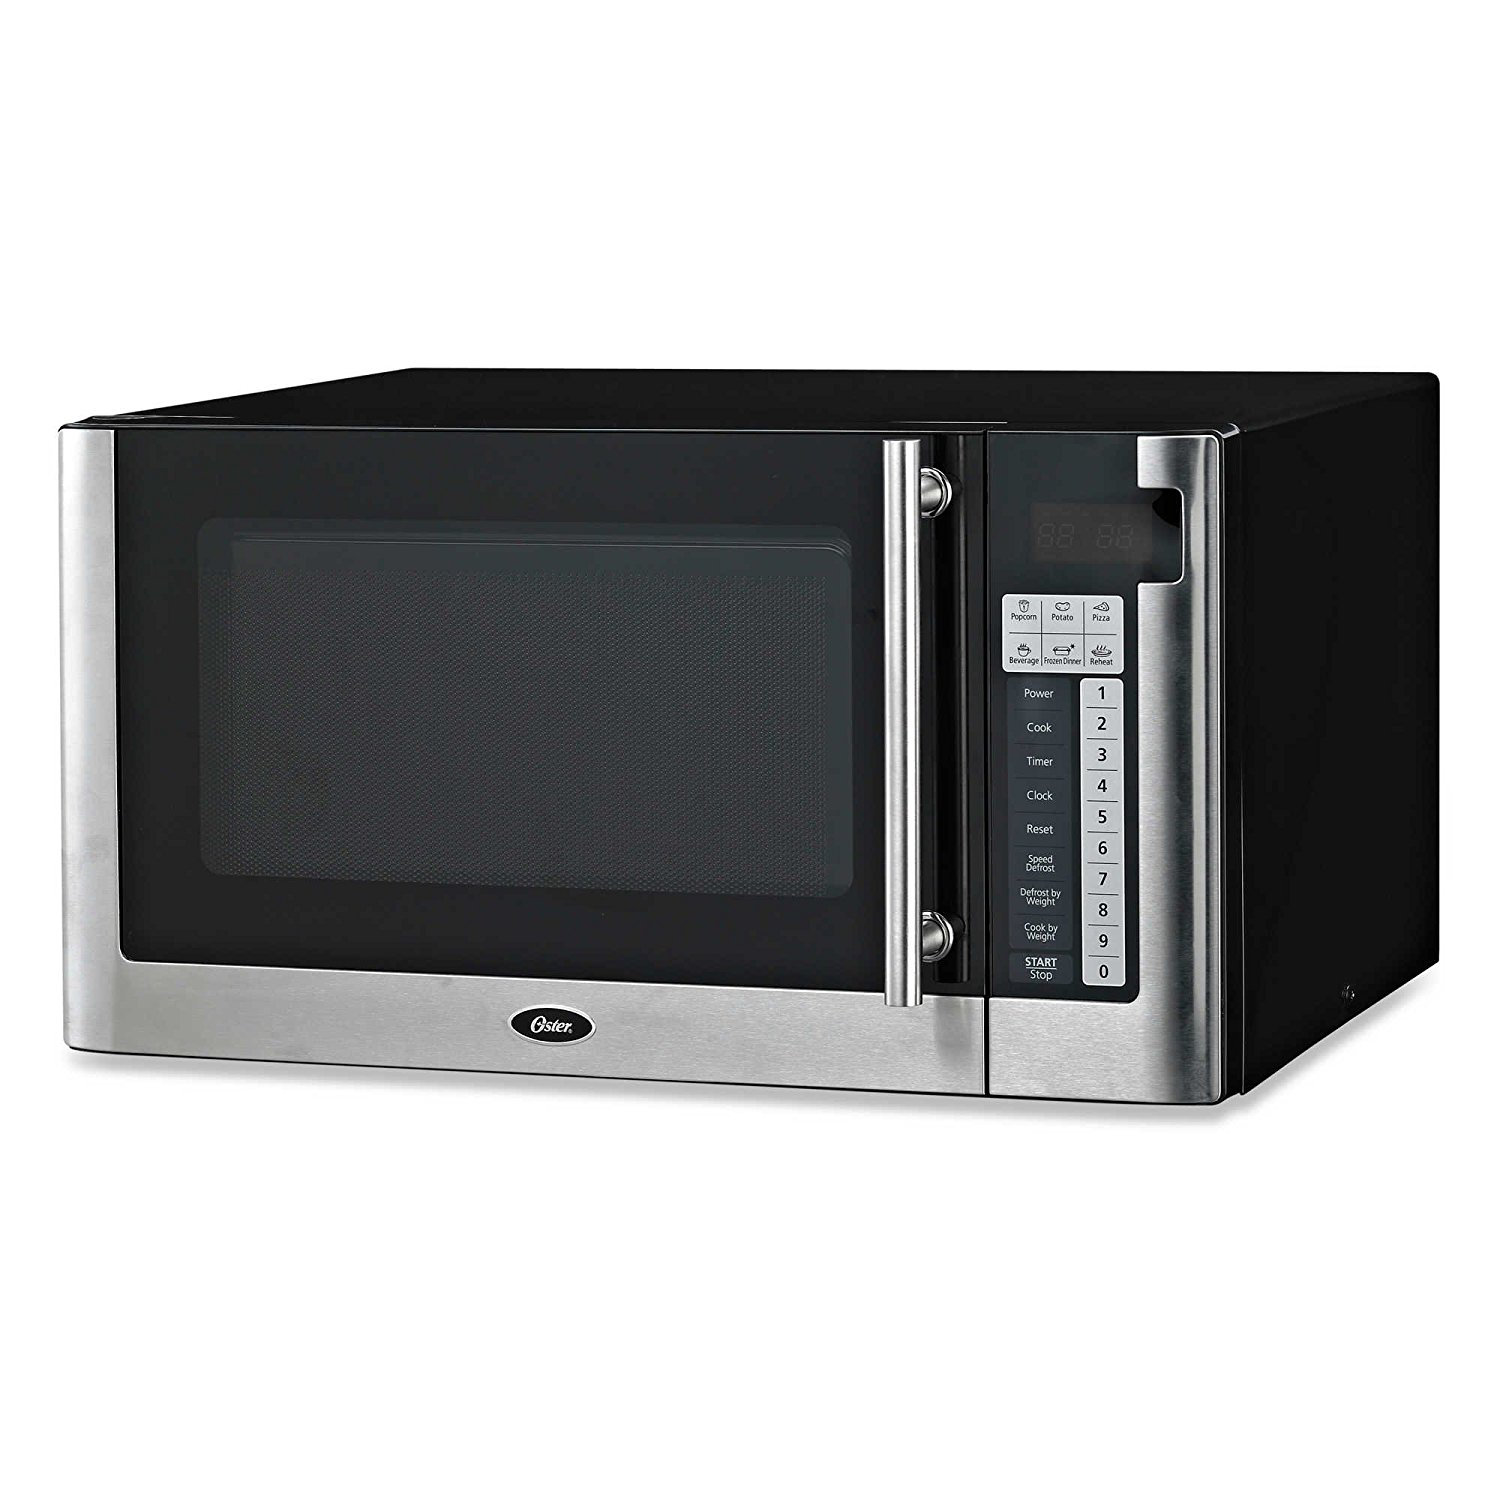 Oster Best and Affordable 1.1-cubic Foot Digital Microwave Oven in Black with One-touch Operation and Child-lock Safety Feature by Oster